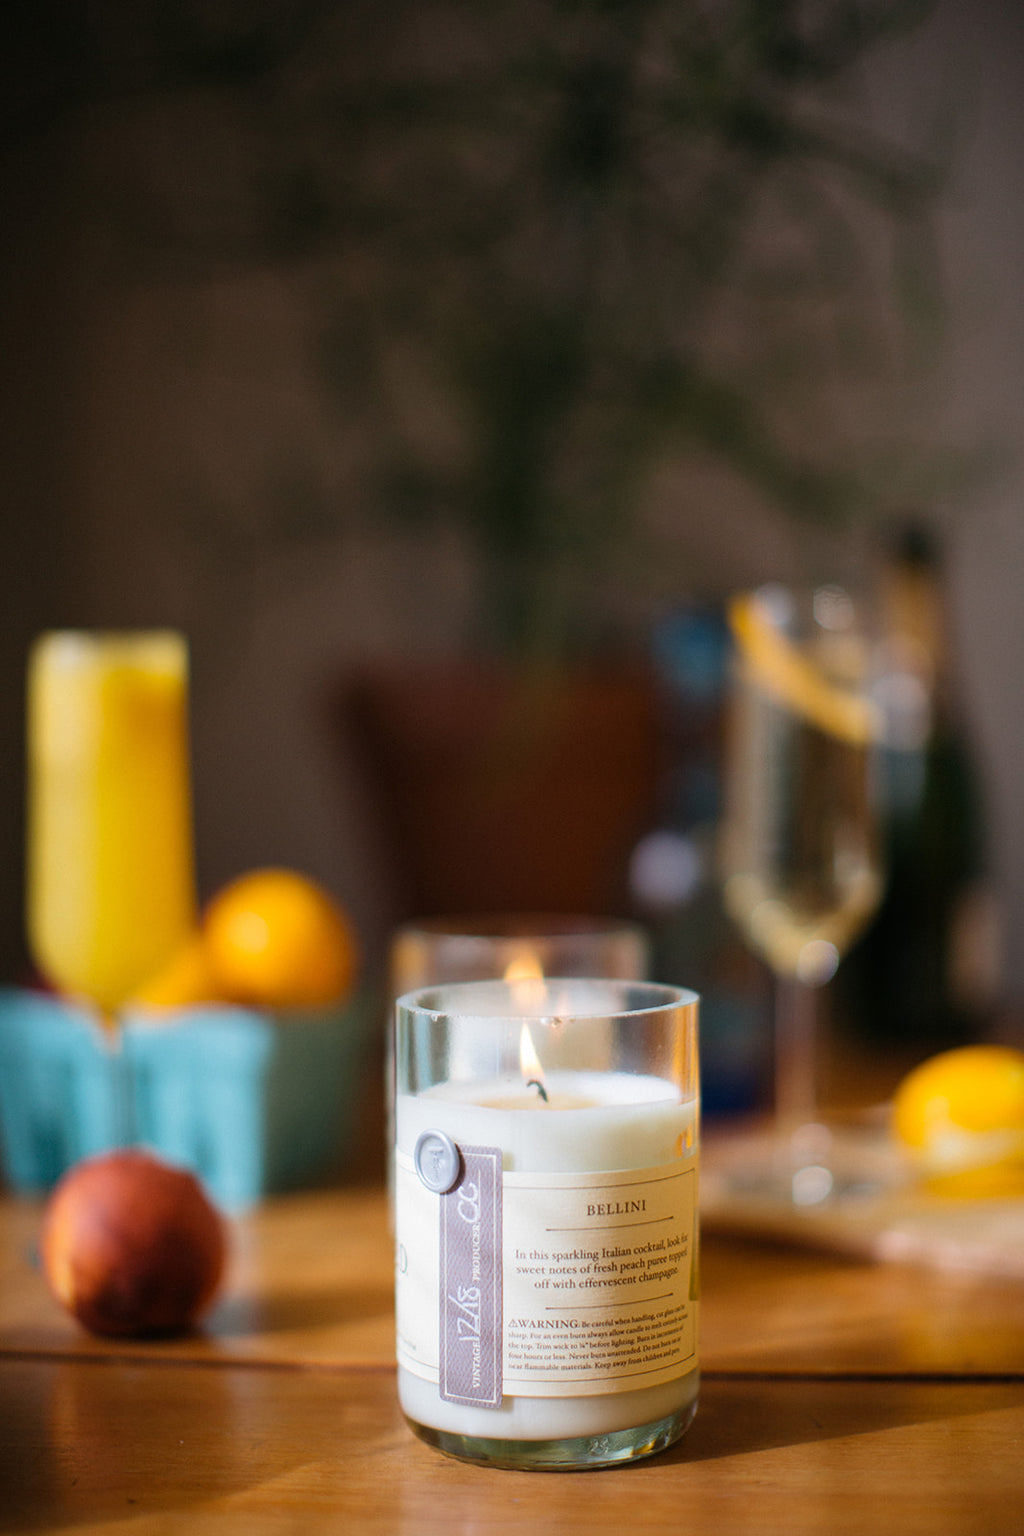 SALE! - Bellini Candle